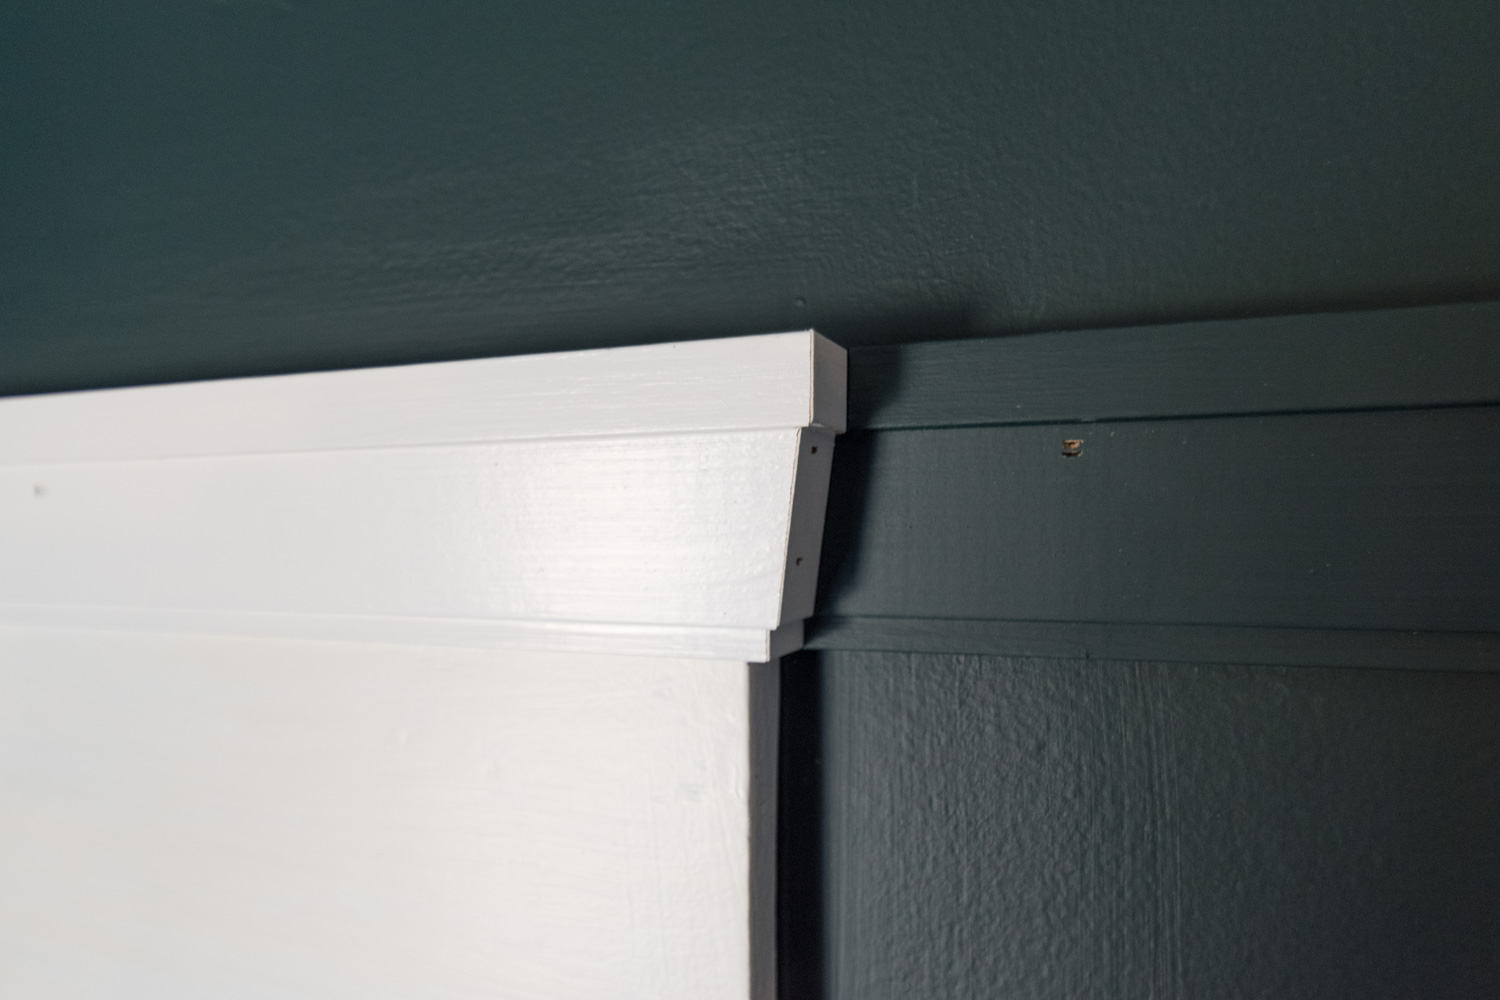 The Gold Hive How To Picture Rail Molding-0438.jpg